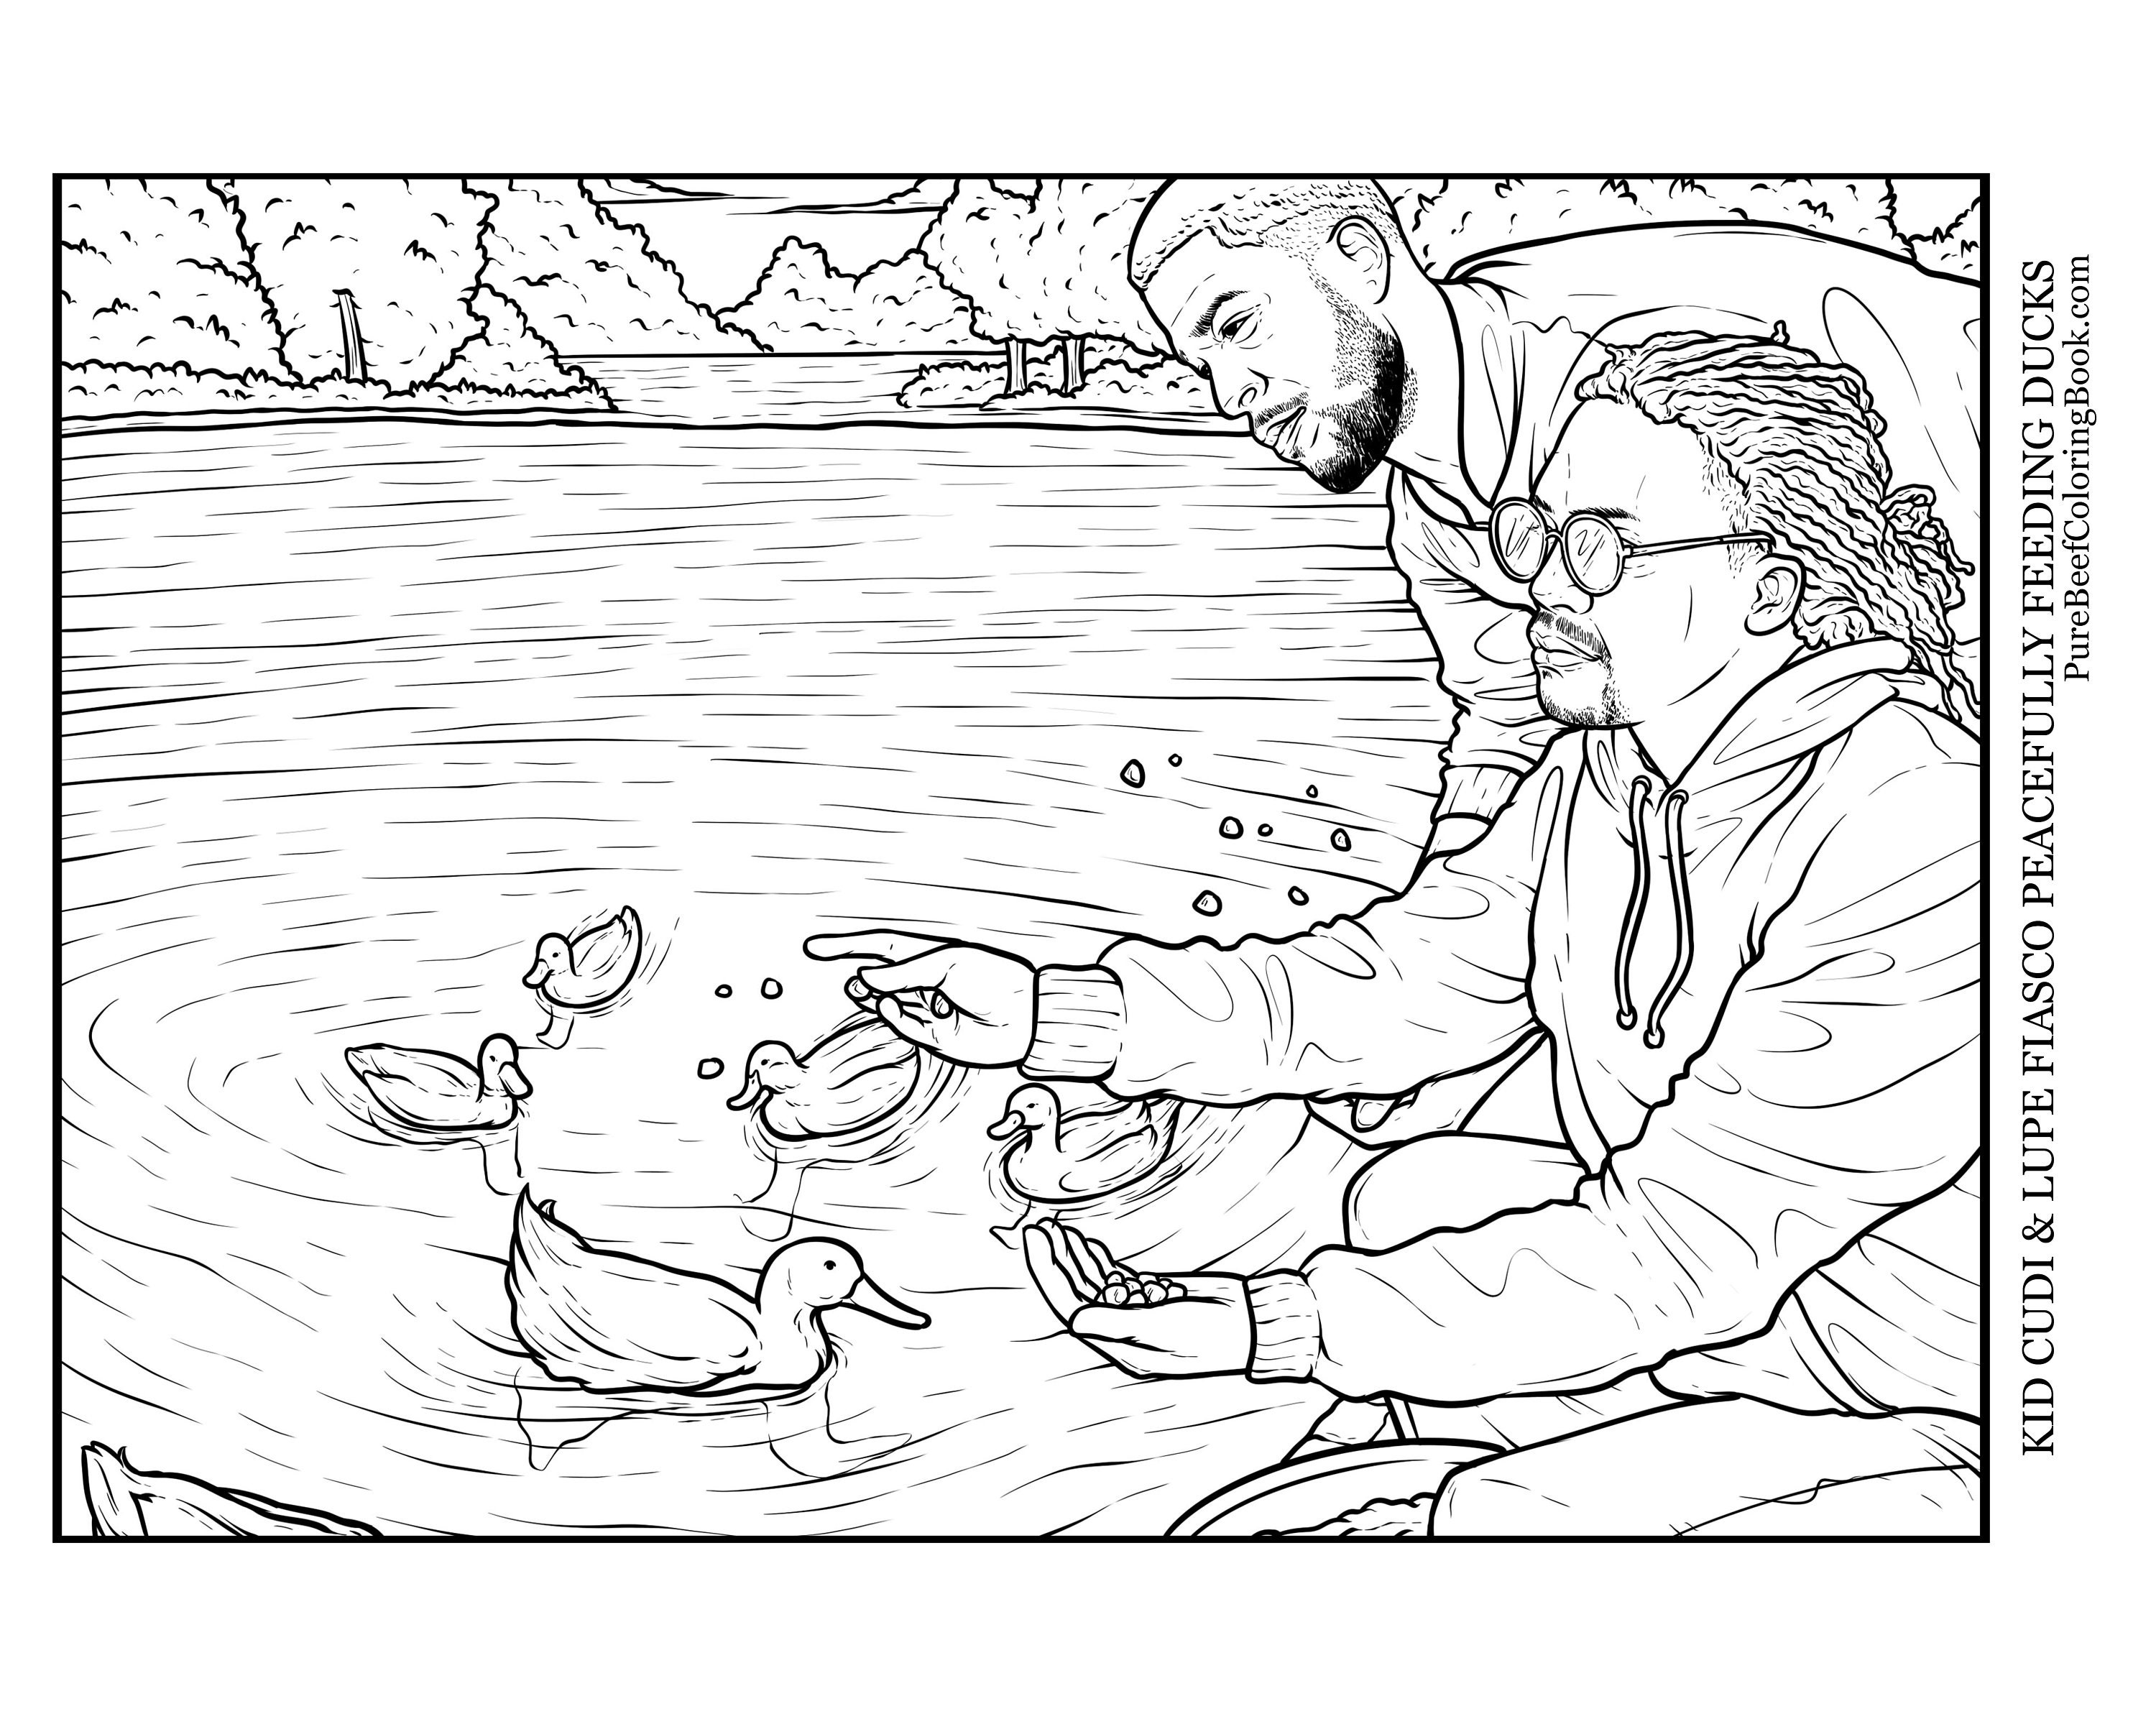 Kid Cudi & Lupe Fiasco Peacefully Feeding Ducks - Pure Beef: A Wholesome  Rap Coloring Book. Adult Coloring.